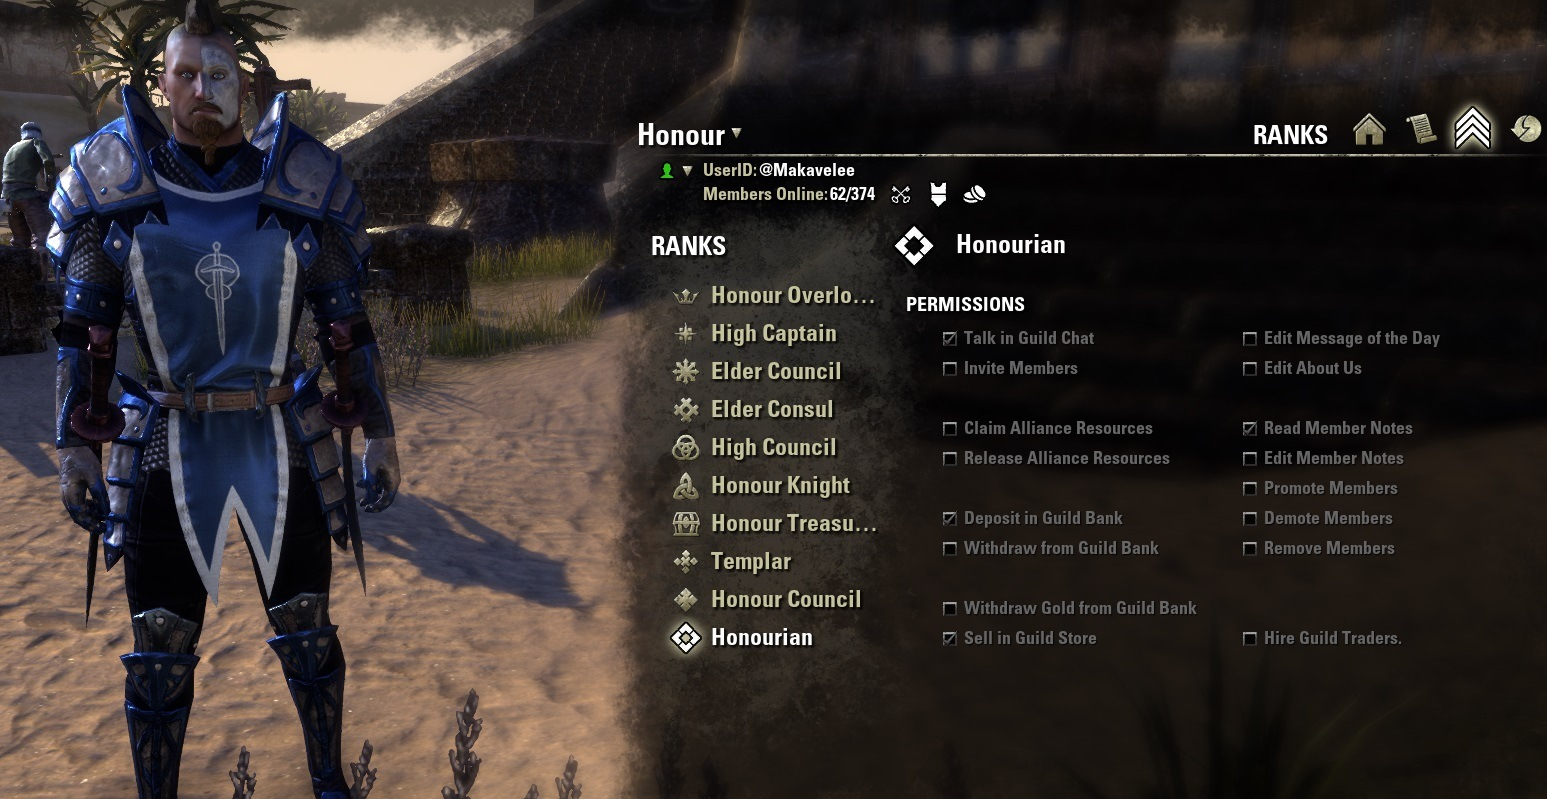 Honour Eso Ranks And Coat Of Arms